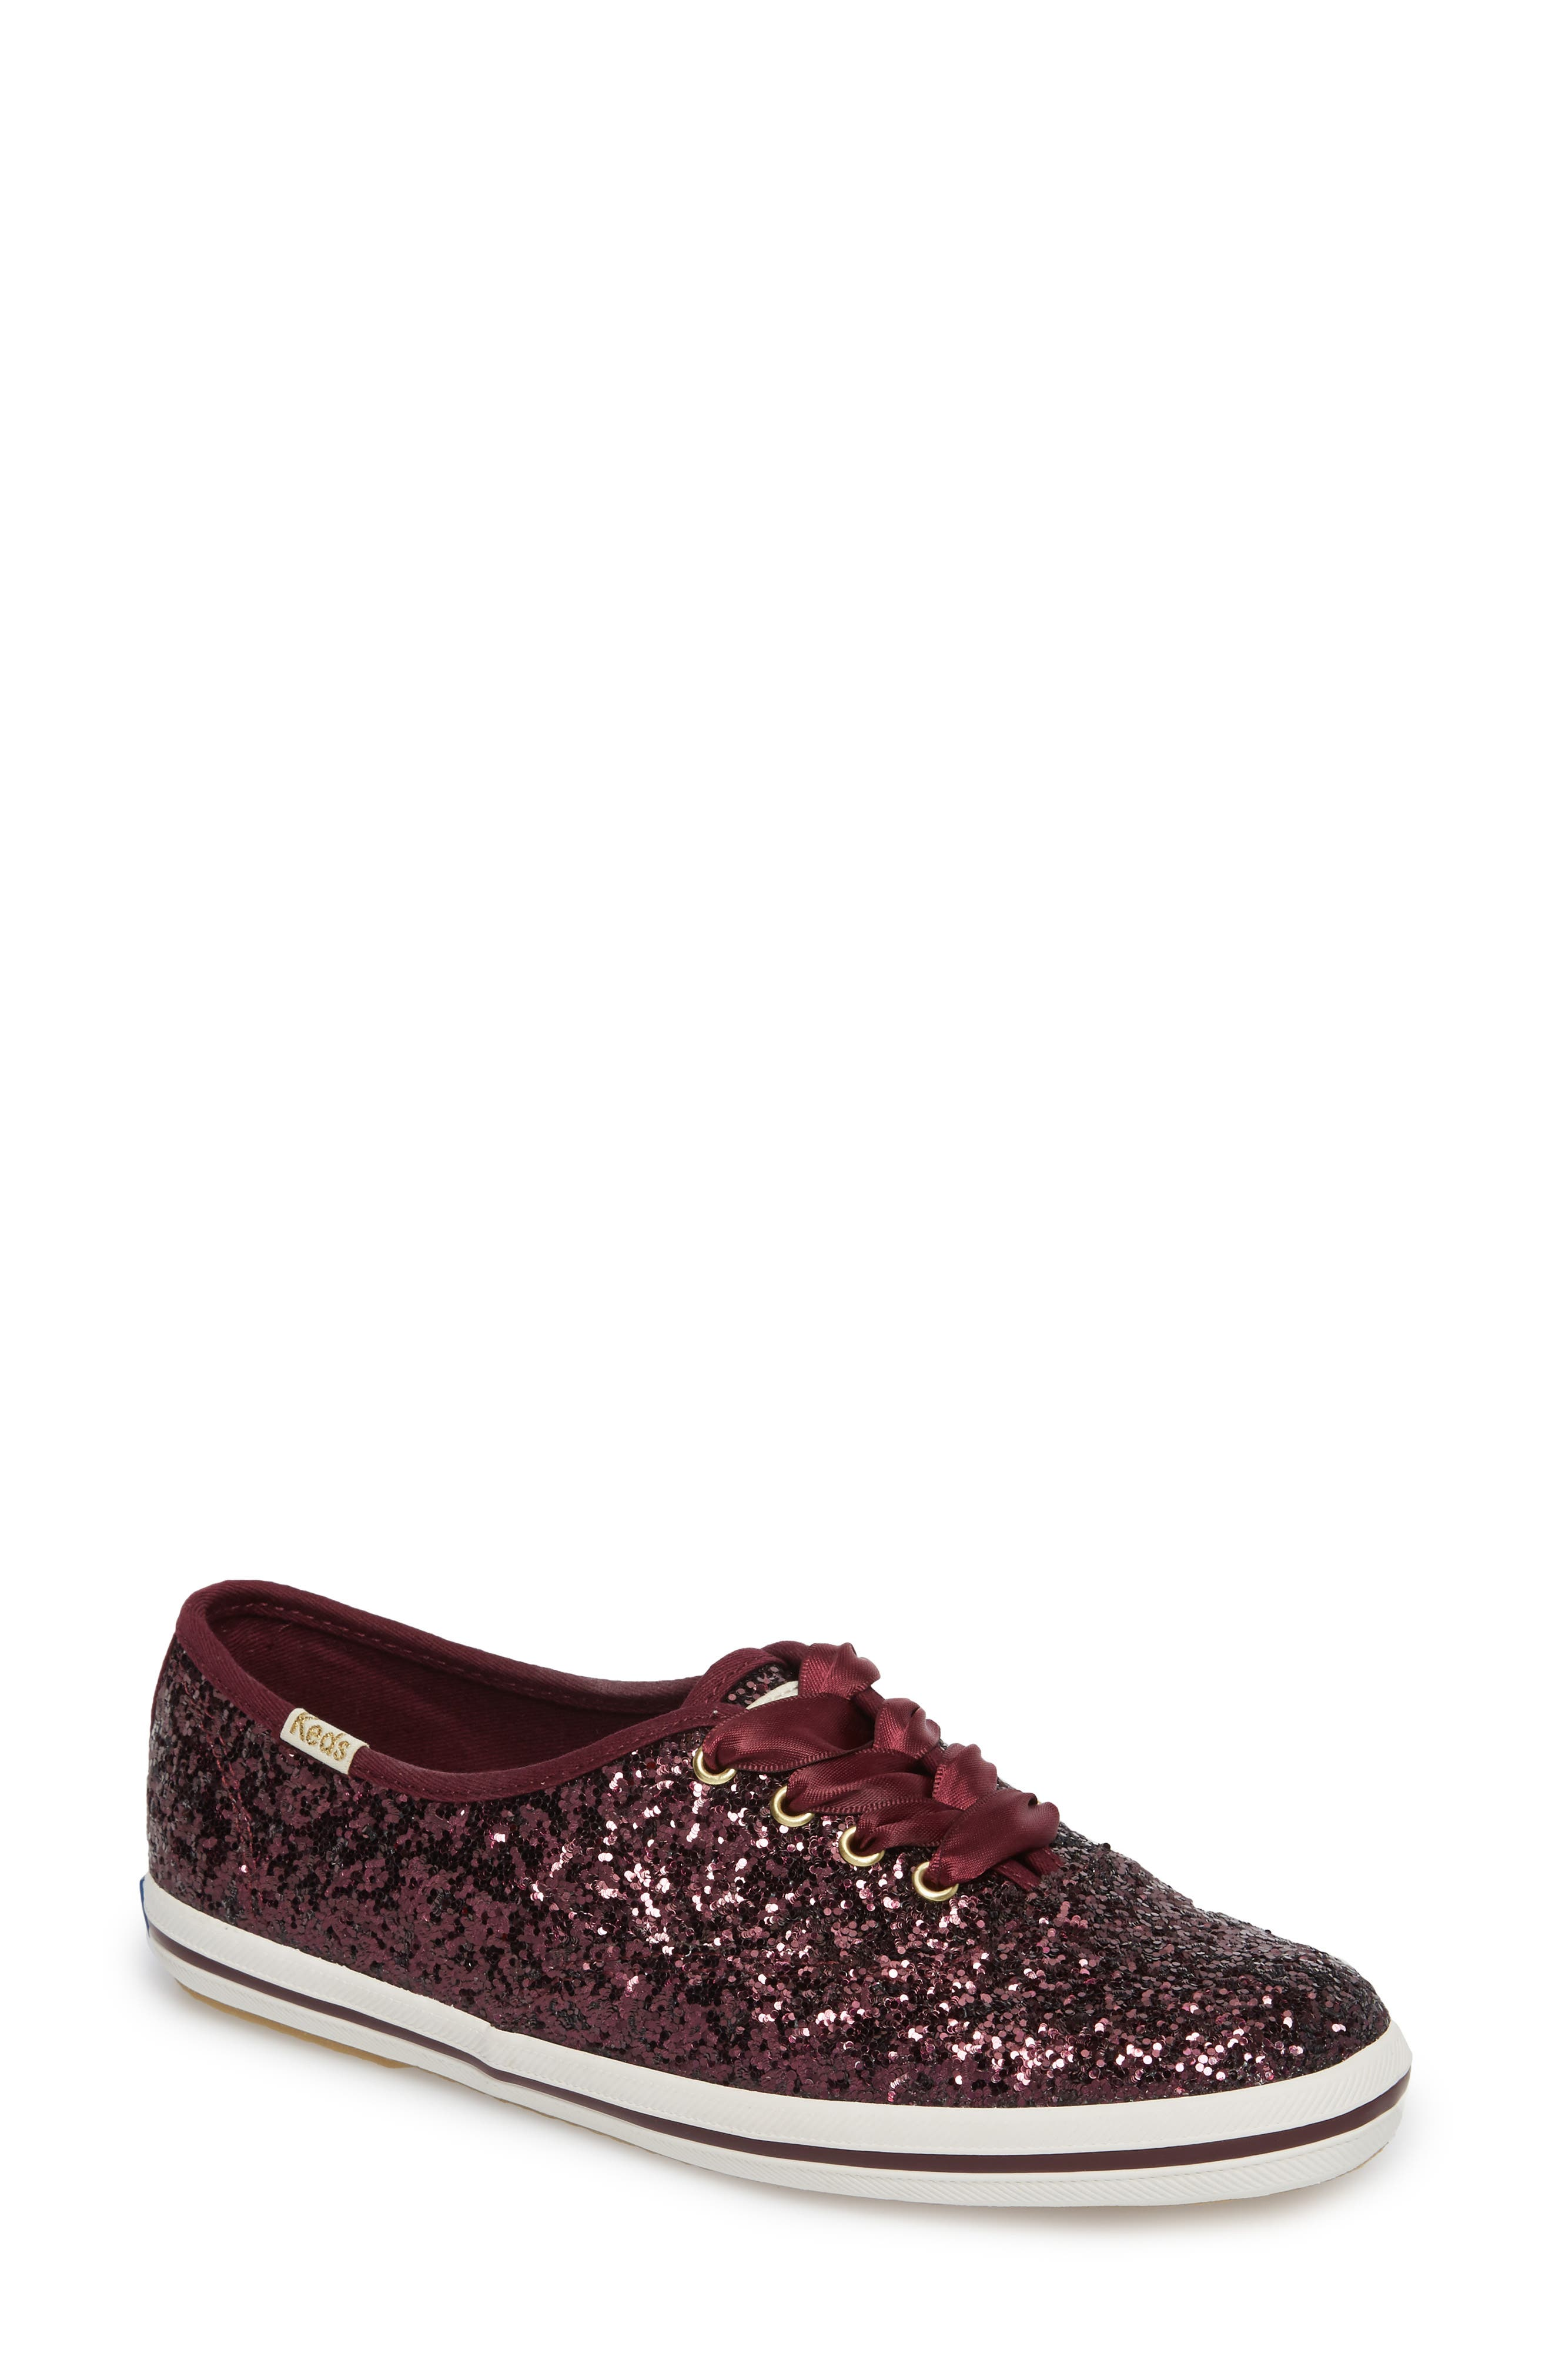 Alternate Image 1 Selected - Keds® for kate spade new york glitter sneaker (Women)